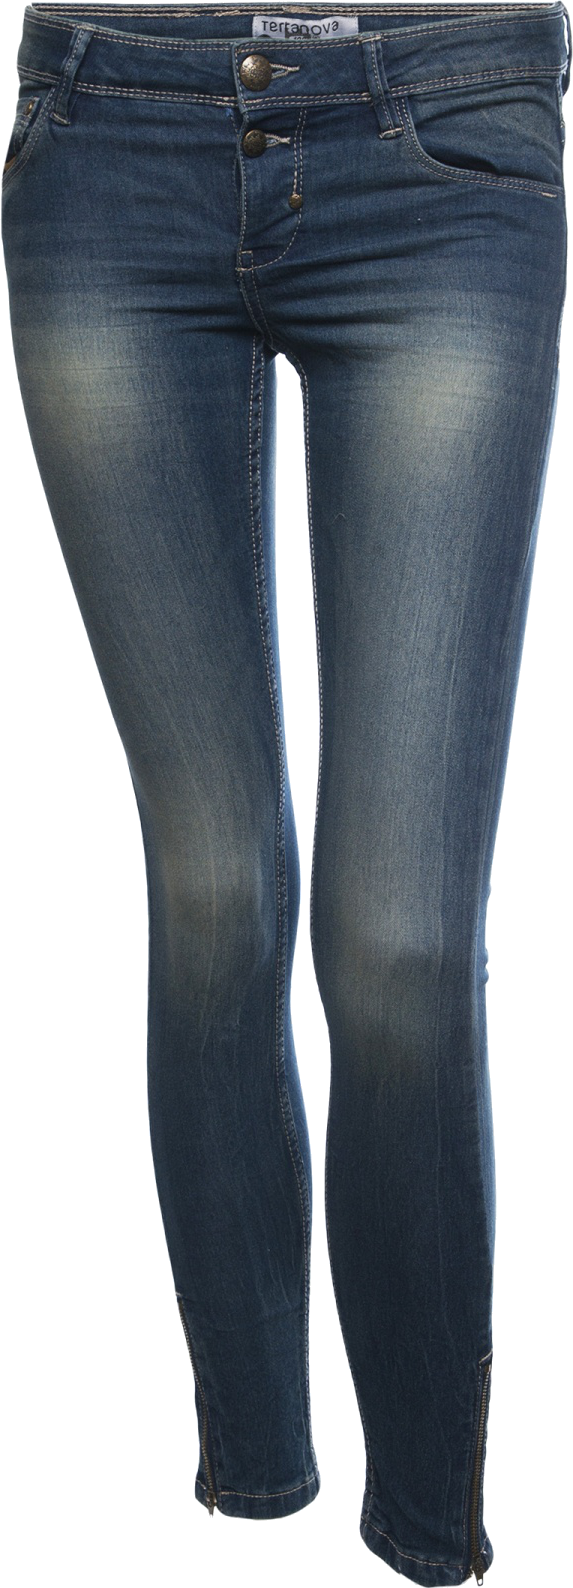 PROMO SAND-WASHED JEANS